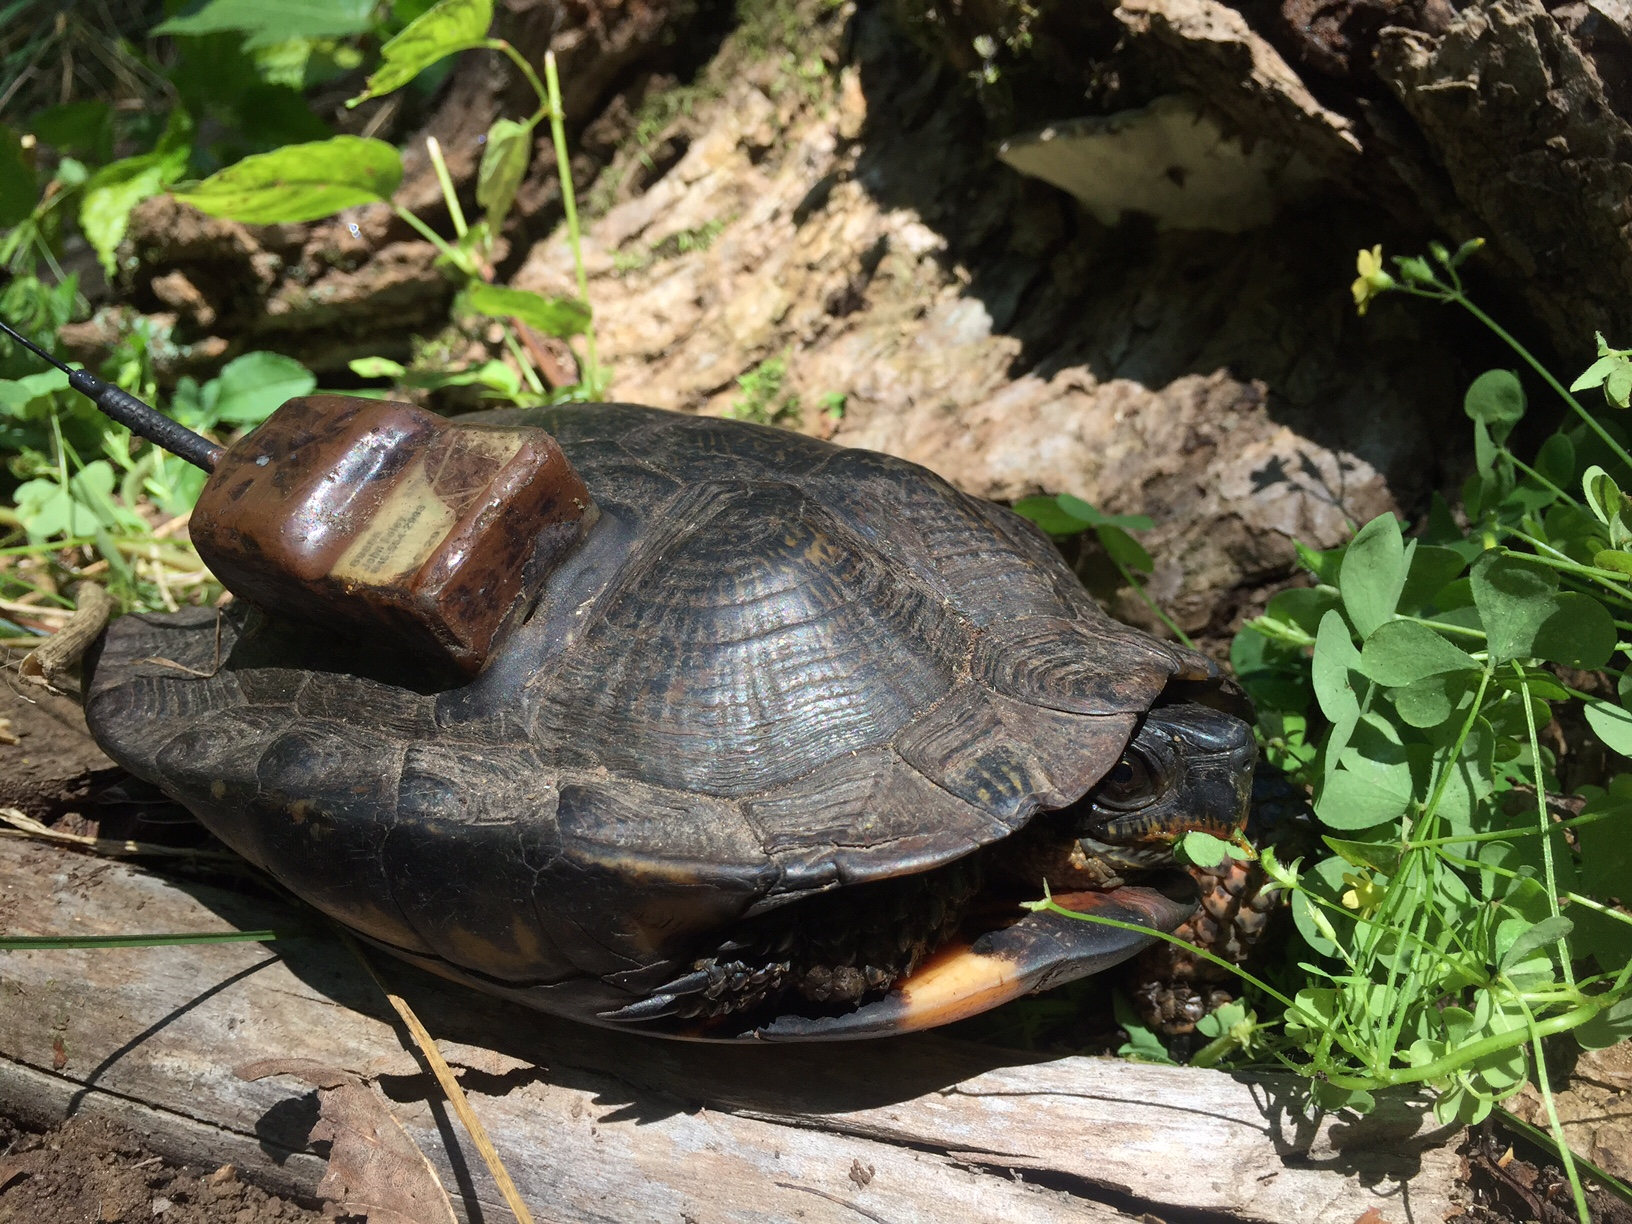 Female wood turtle showing the attached radio transmitter. Photograph by Timothy J. Walsh